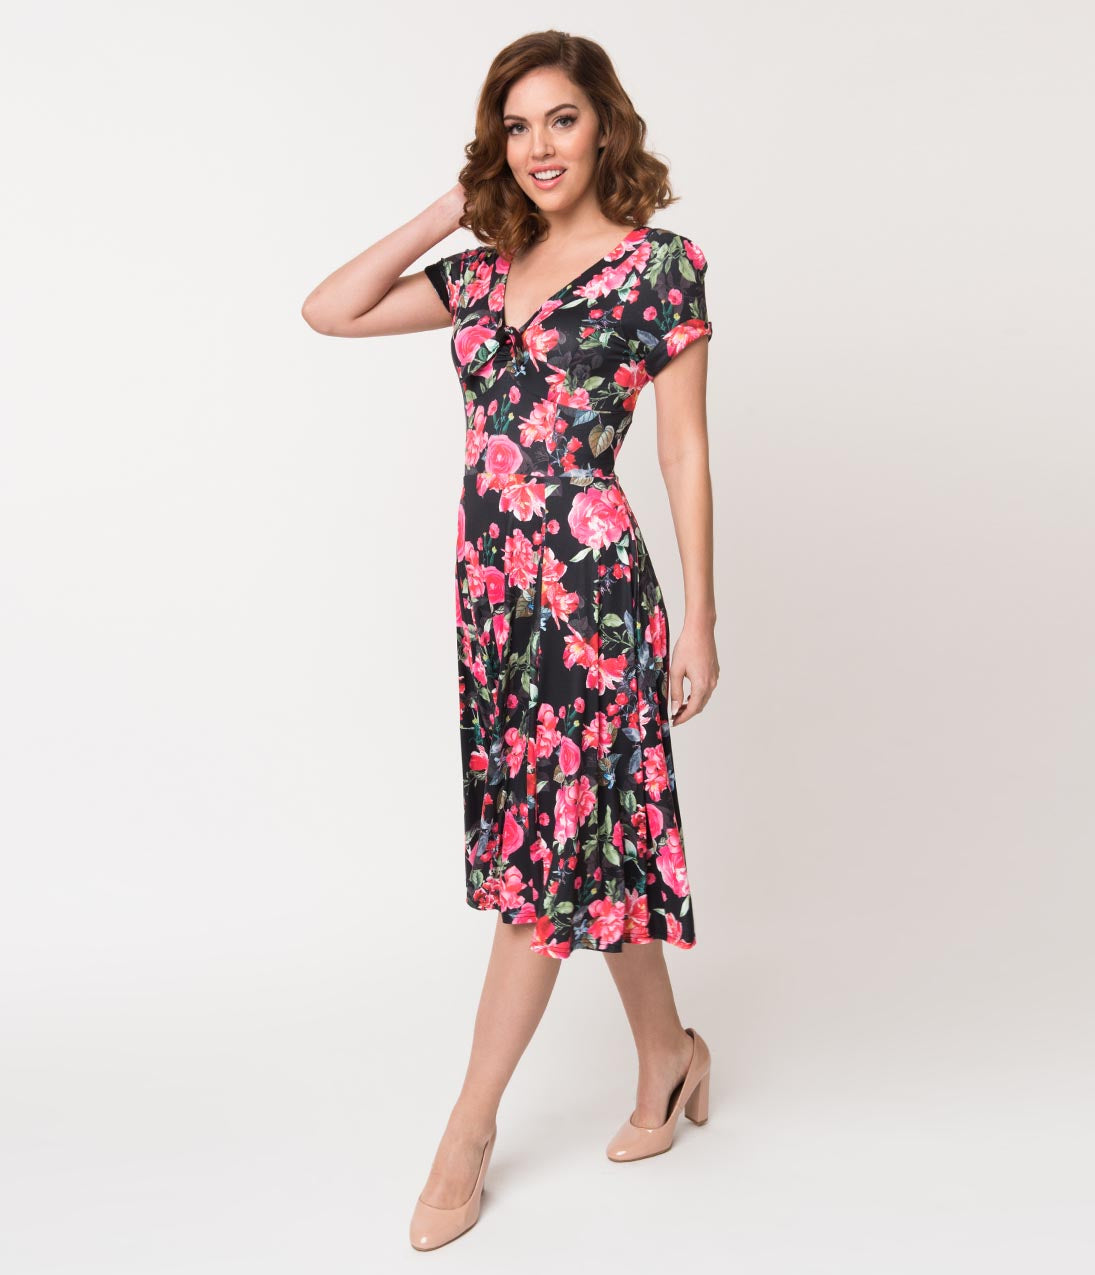 Swing Dance Clothing You Can Dance In Unique Vintage 1940S Style Black  Pink Floral Short Sleeve Natalie Swing Dress $66.00 AT vintagedancer.com